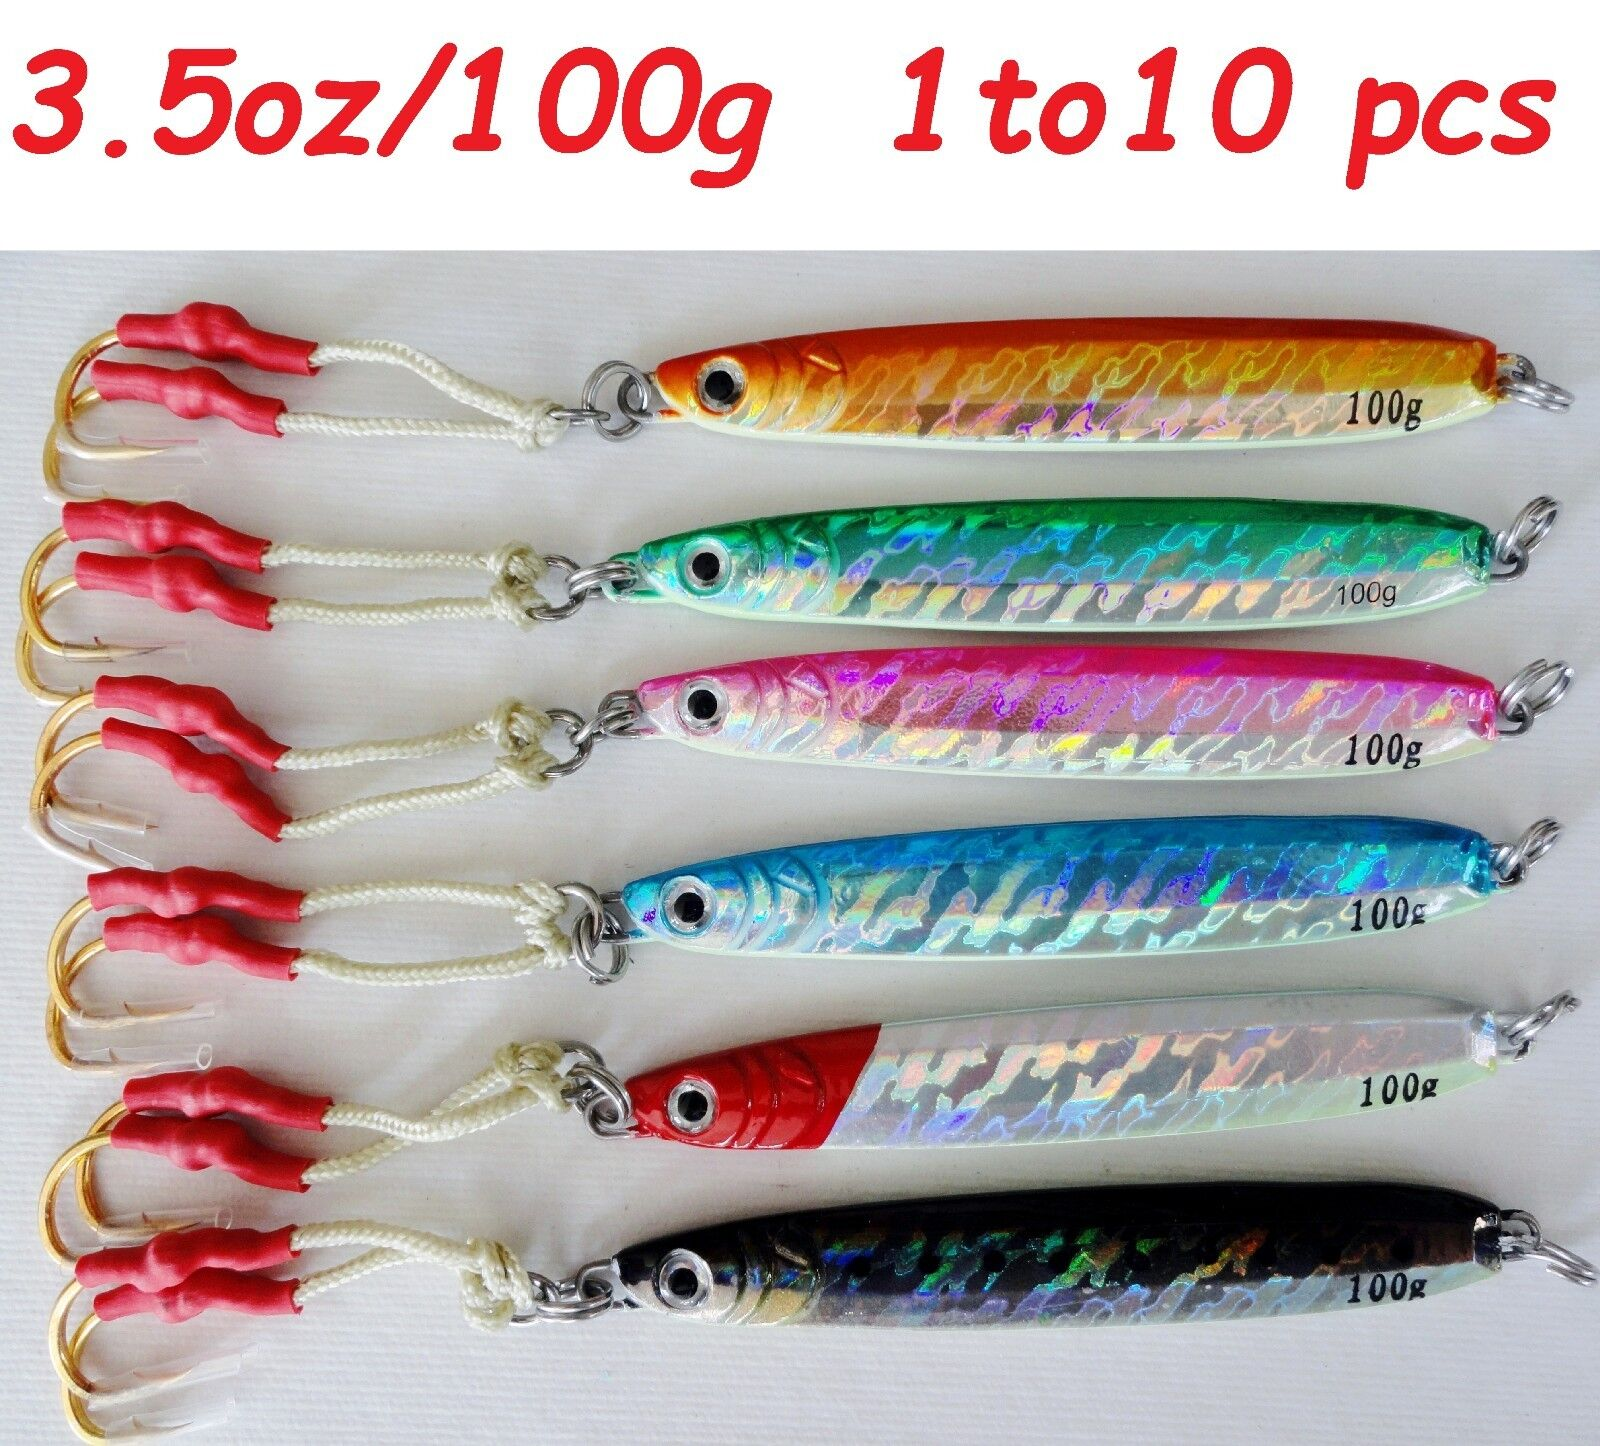 Knife Jig 3.5oz /100g Vertical Butterfly to Saltwater Fishing Lures 1 to Butterfly 10 Pieces 592548